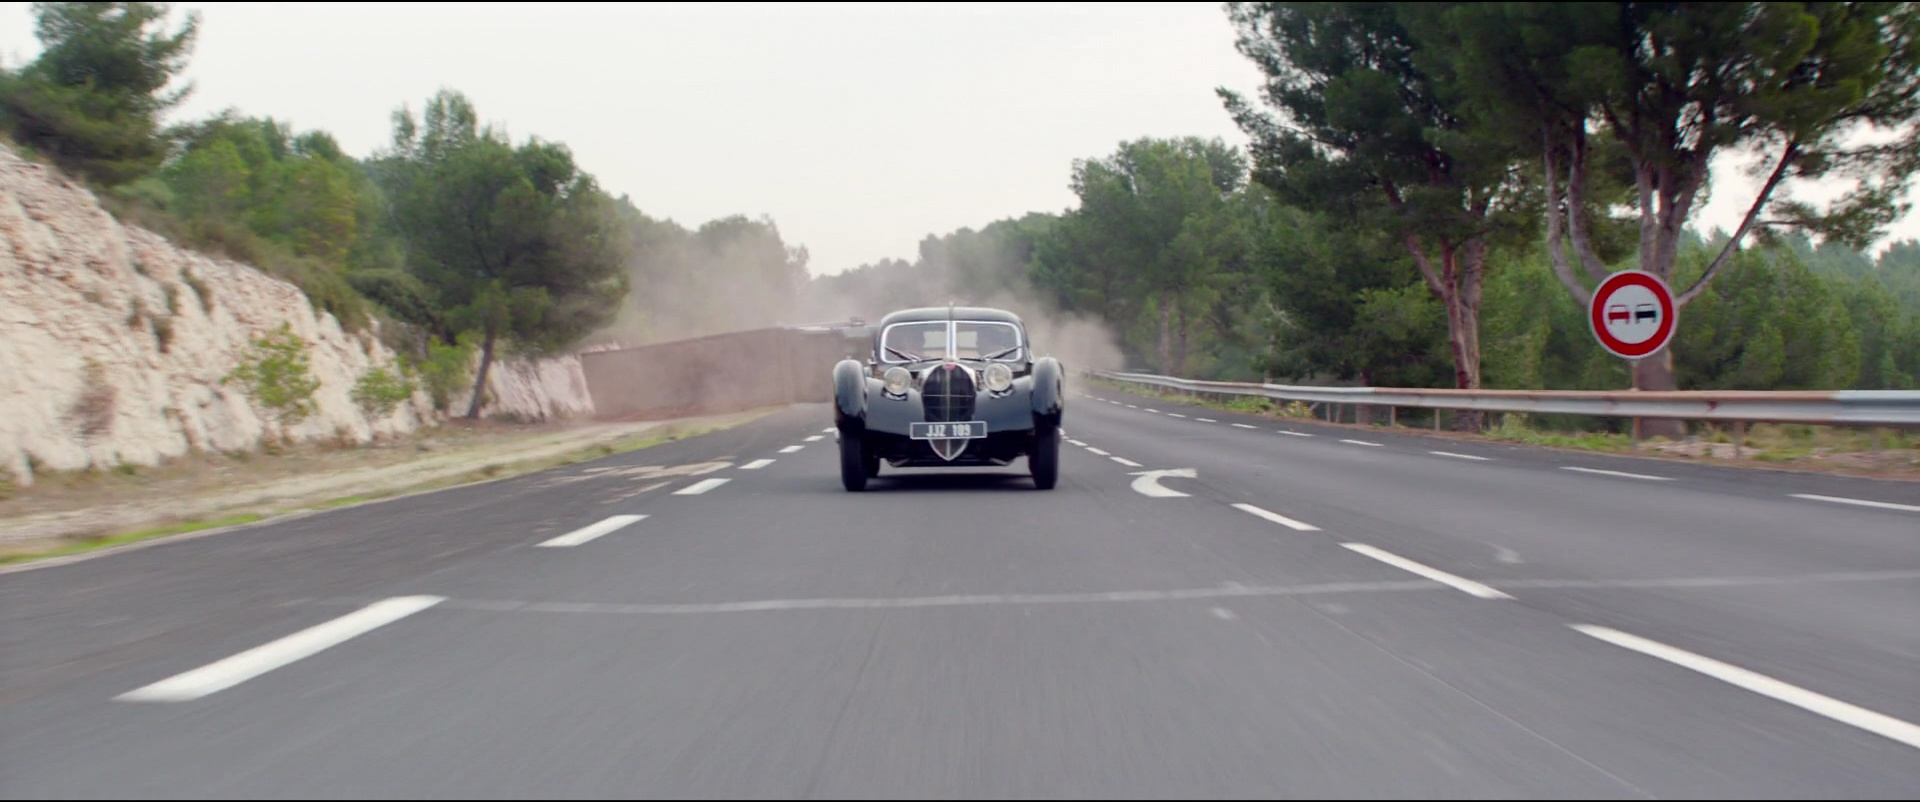 Exotic Car Brands >> Bugatti Type 57 S Atlantic Car in Overdrive (2017) Movie